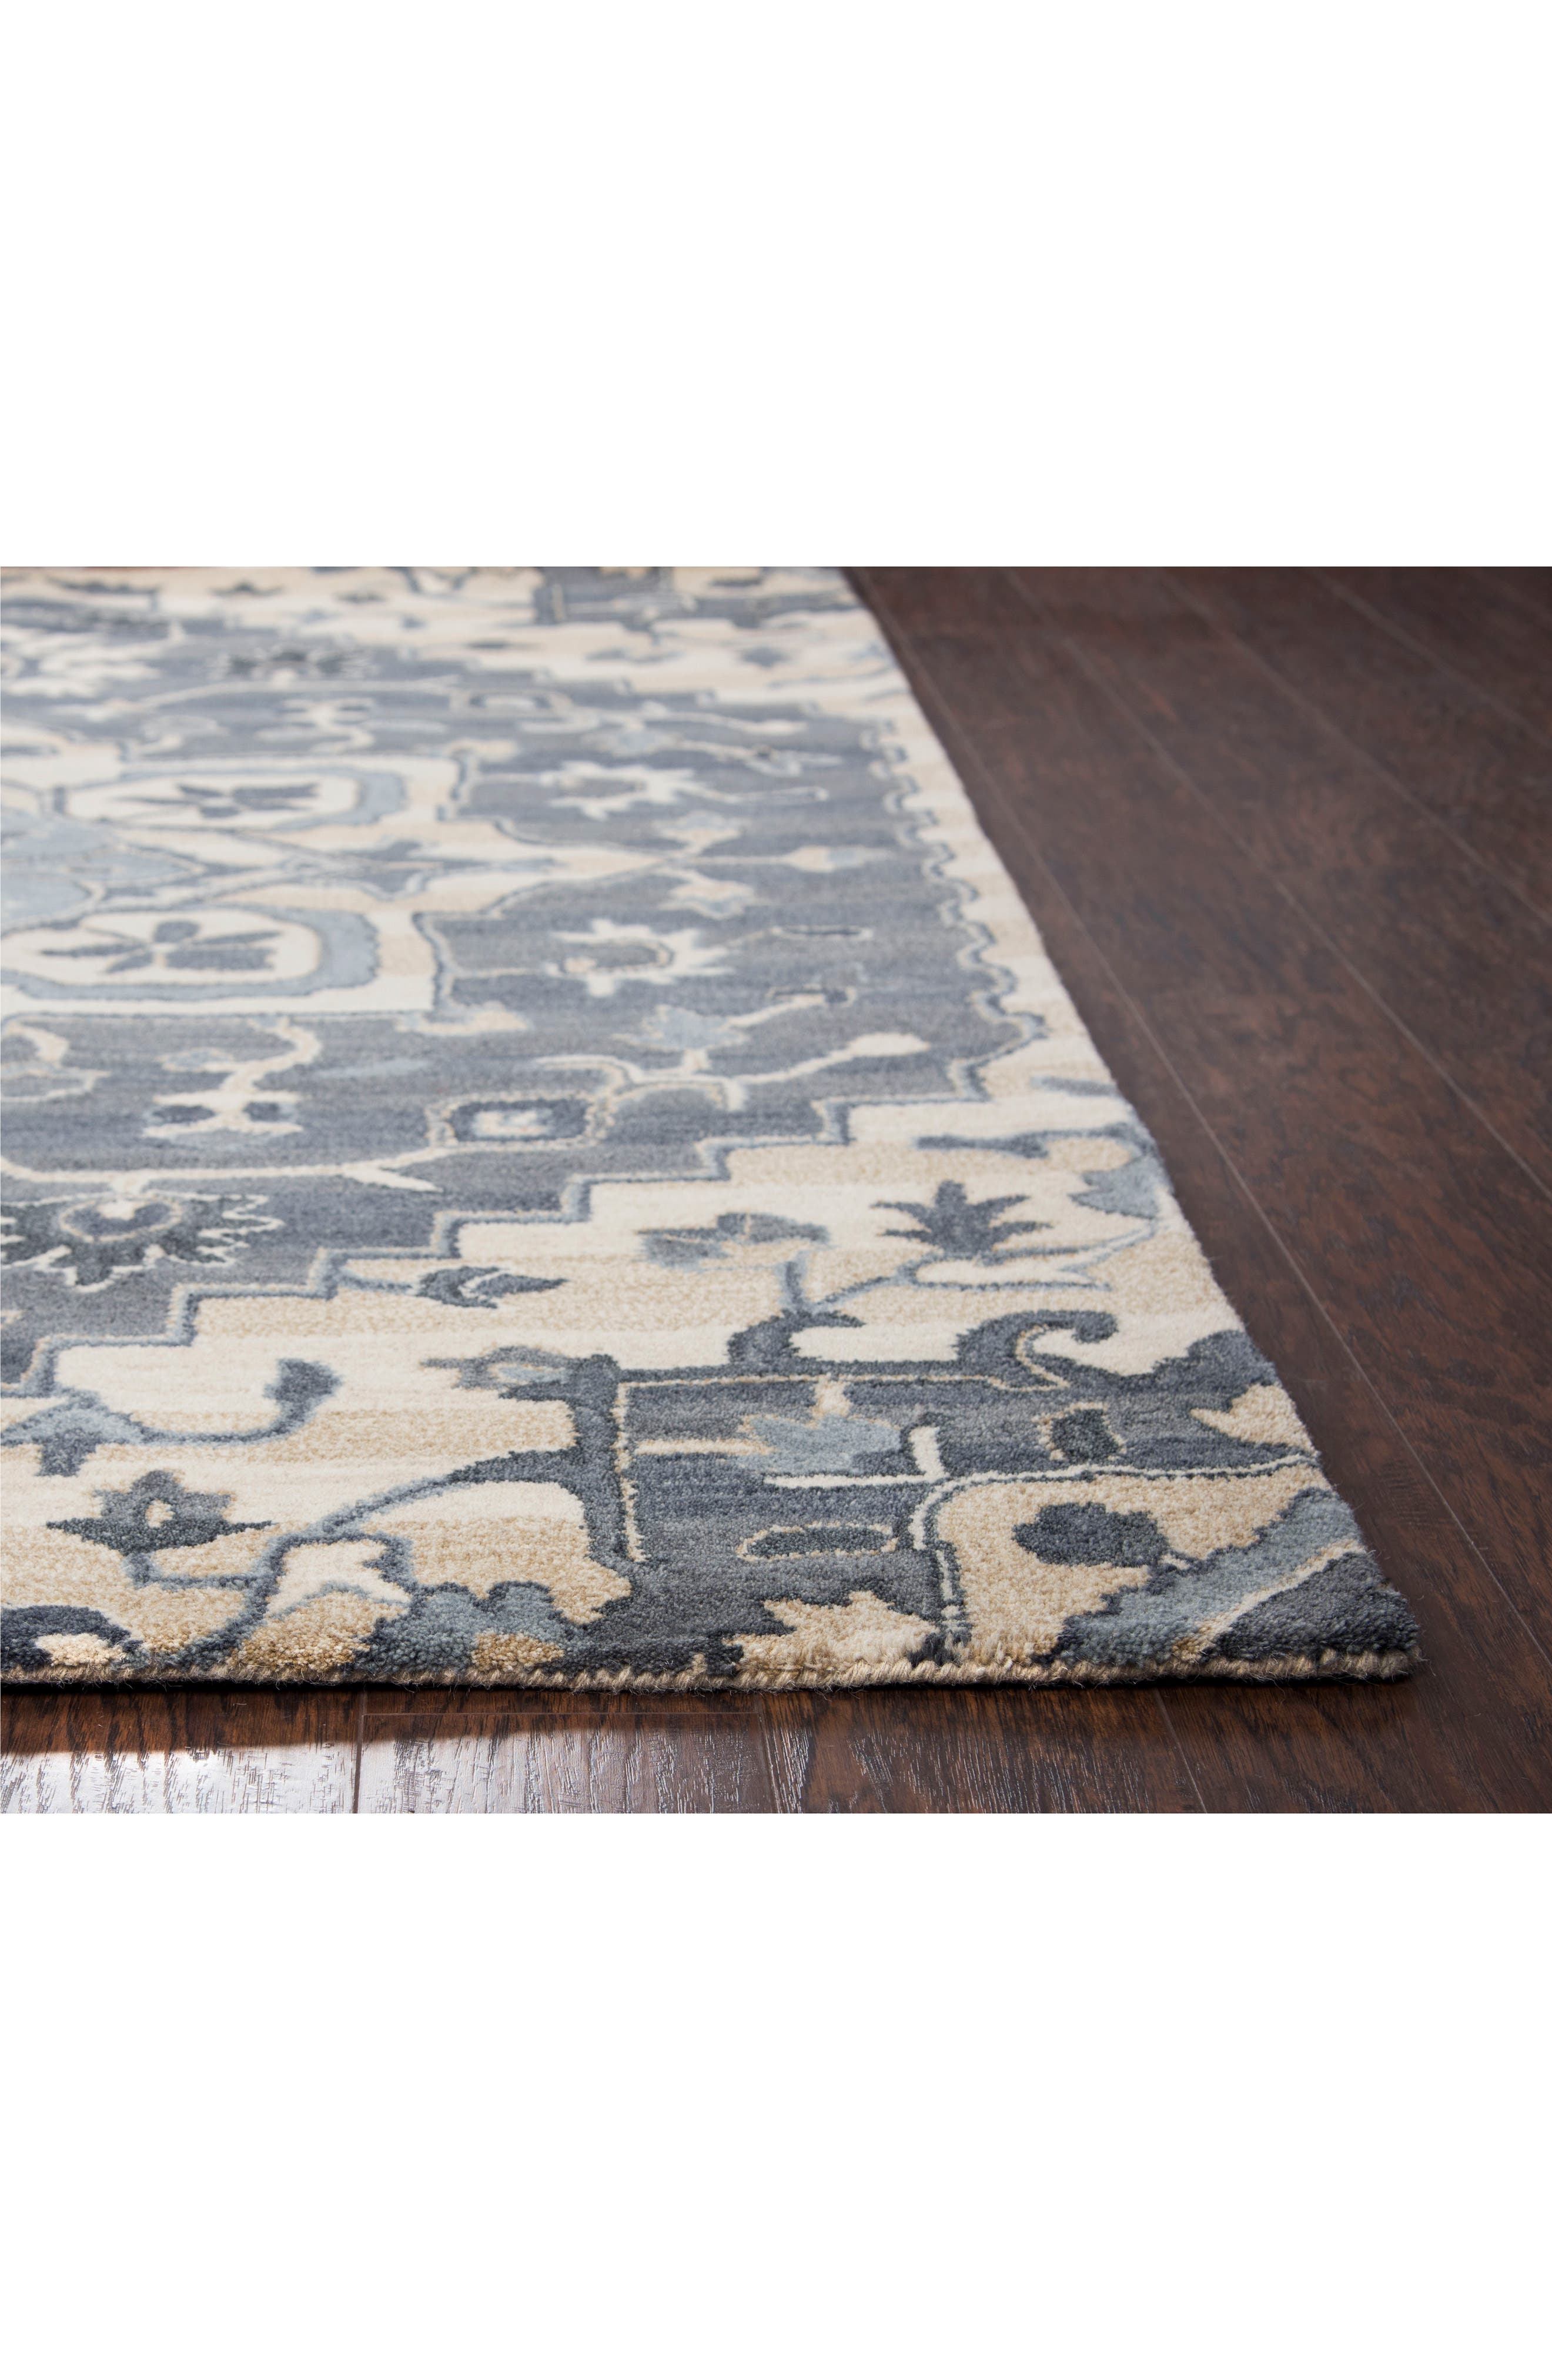 Veronica Hand Tufted Wool Rug,                             Alternate thumbnail 2, color,                             400